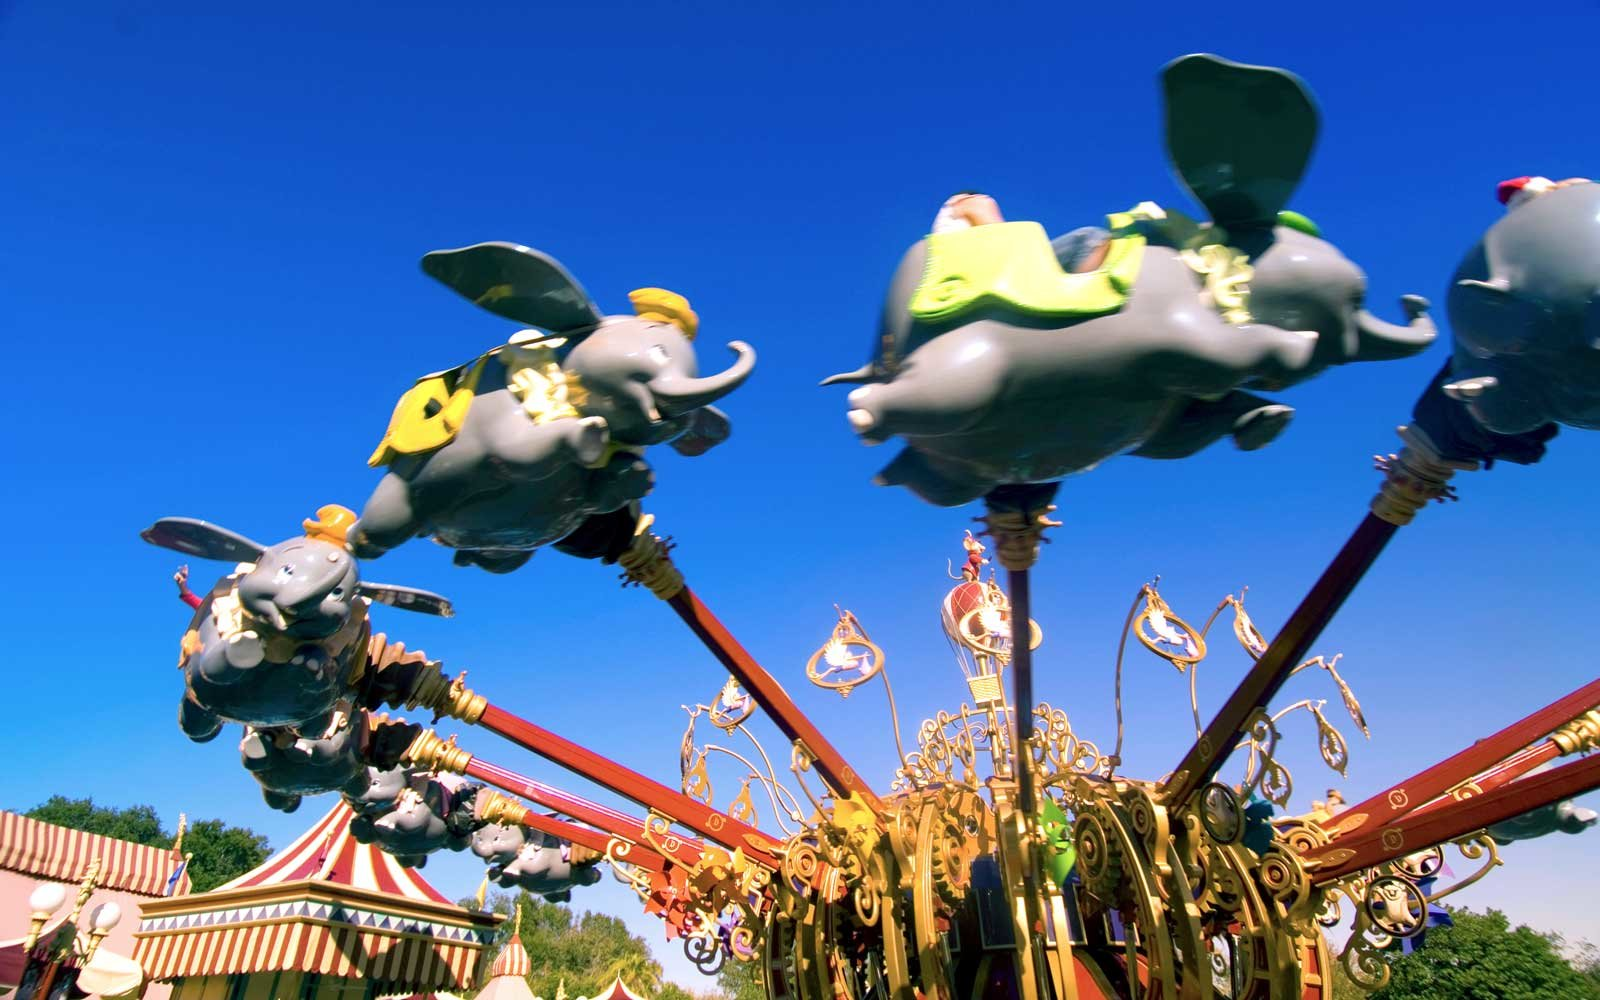 The Best Disney World Tips According to a Disney Expert